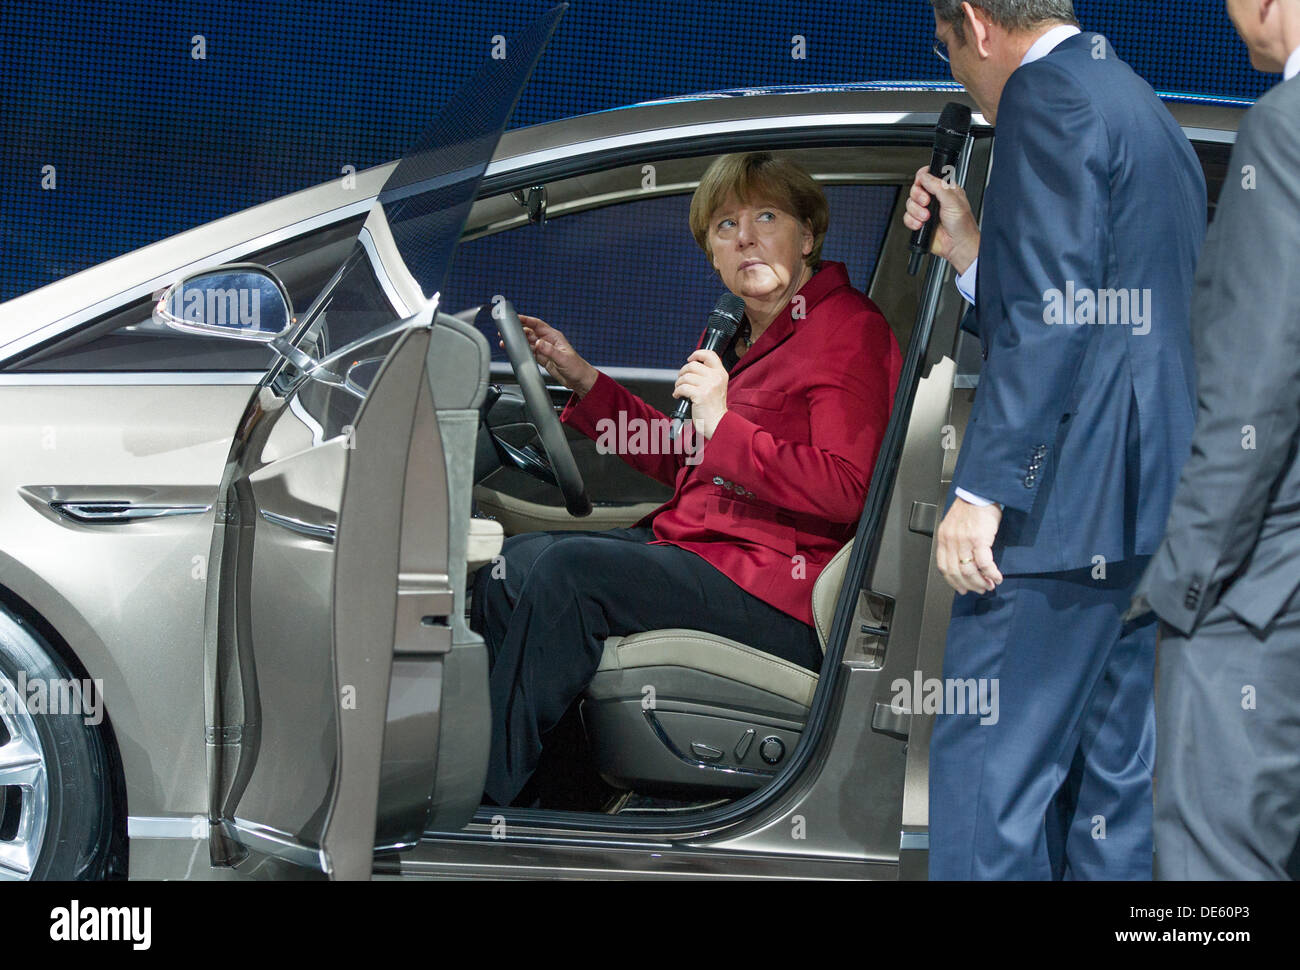 Frankfurt, Germany. 12th Sep, 2013. German Chancellor Angela Merkel (CDU, L)sits in a S-Max Concept car model of car manufacturer Ford at the 65th International Fankfurt Motor Show (IAA) in Frankfurt, Germany, 12 September 2013. Almost 1100 exhibitors from around the world present novelties at the world's largest automobile show IAA until 22 September 2013. Photo: Uwe Anspach/dpa/Alamy Live News - Stock Image